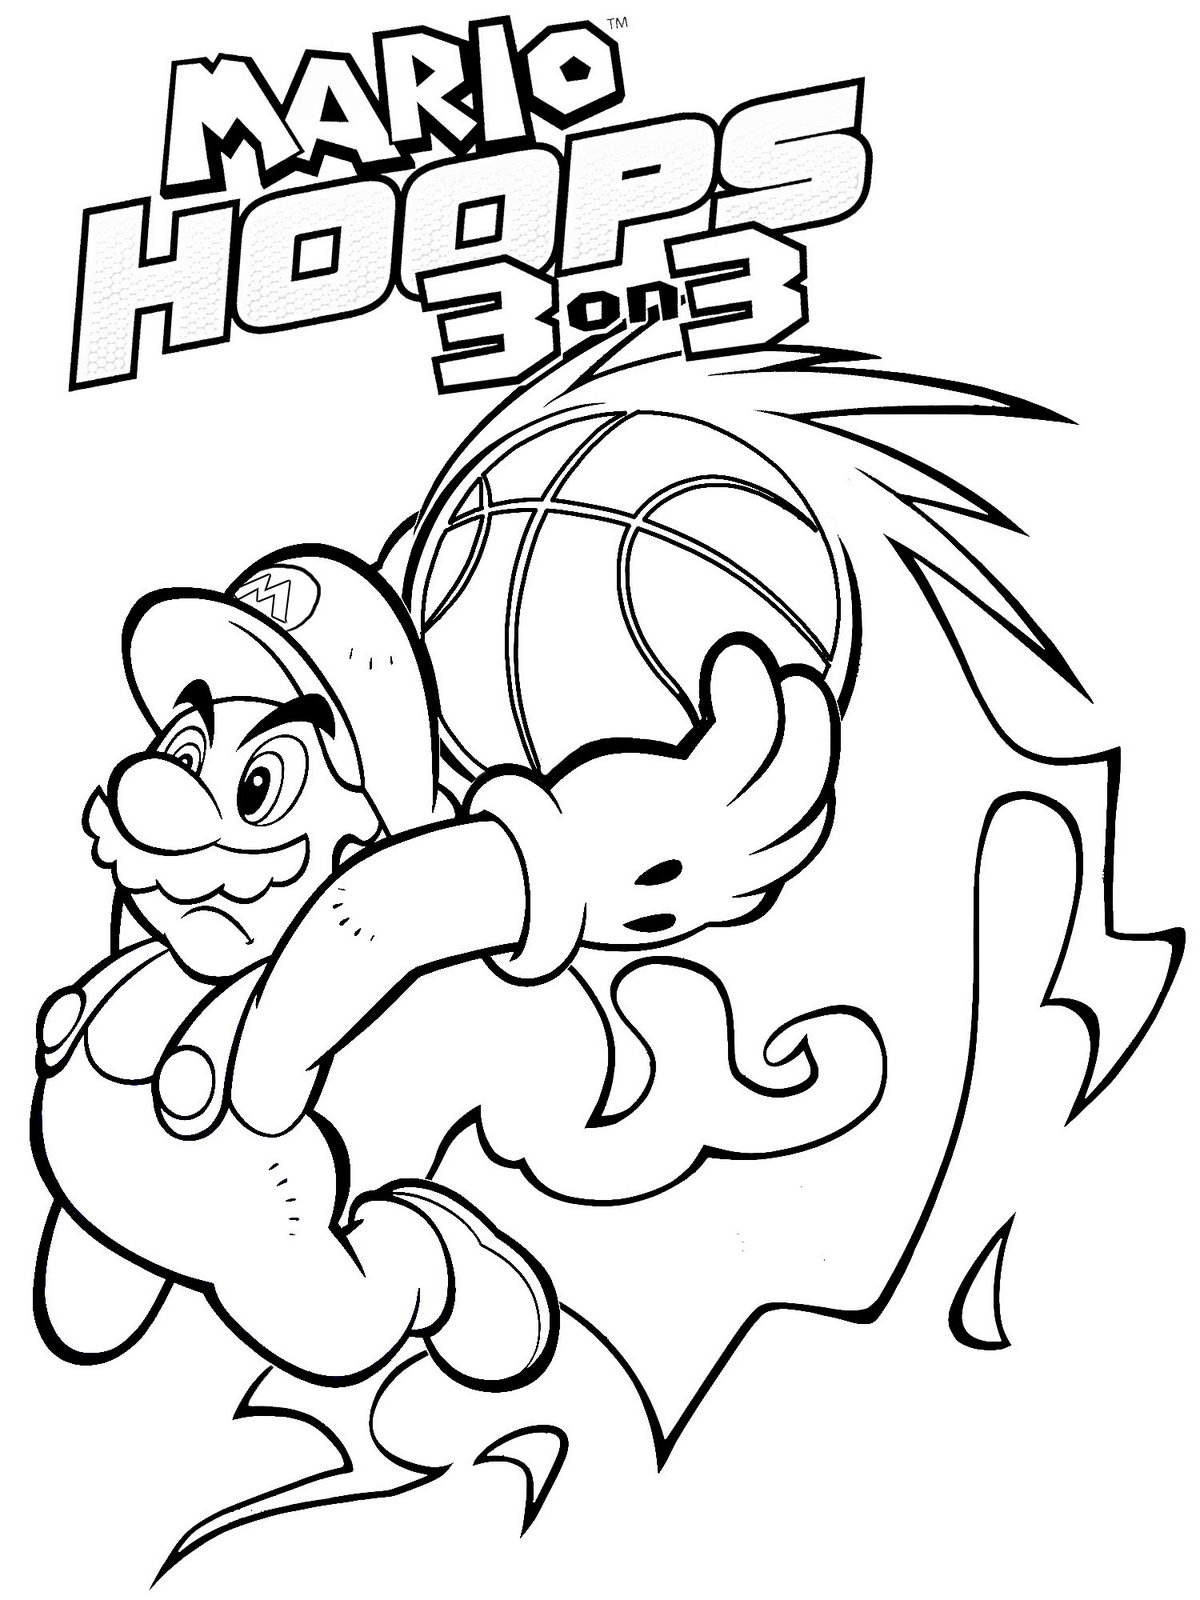 9 free mario bros coloring pages for kids disney for Mario color page